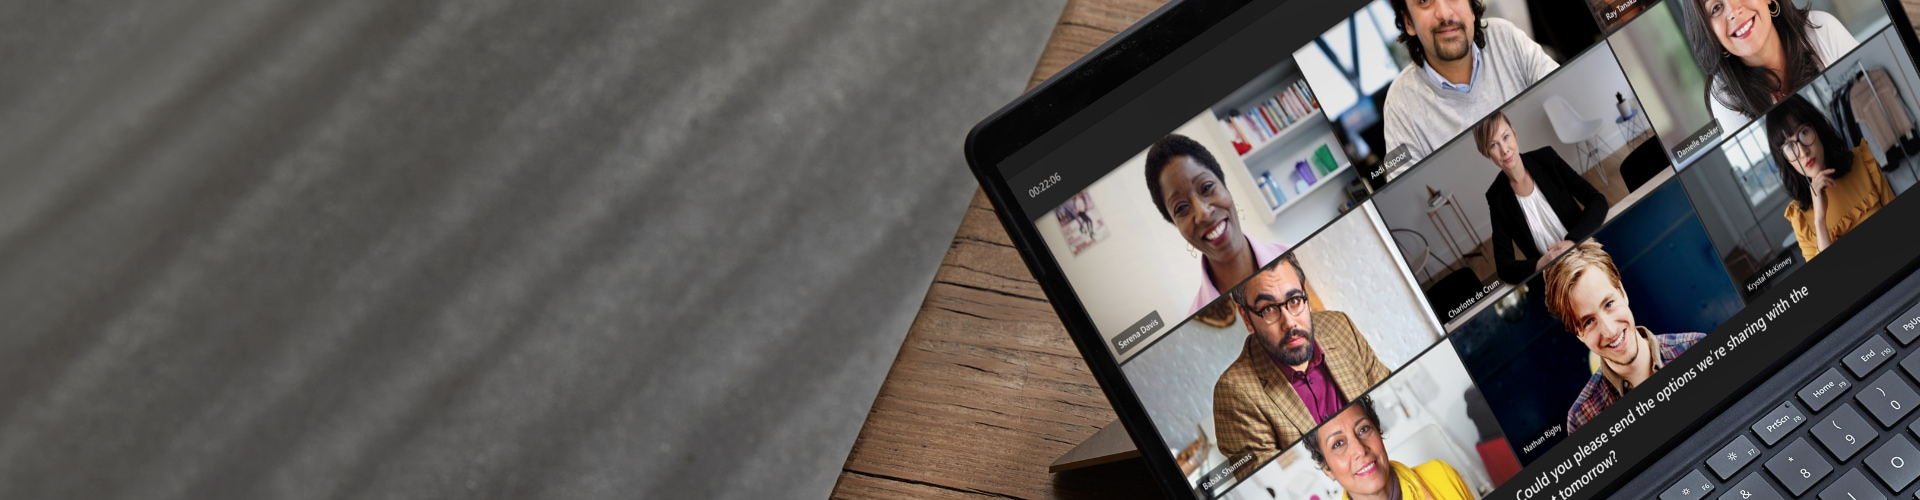 A close up of a multi-person video call in progress on Teams.